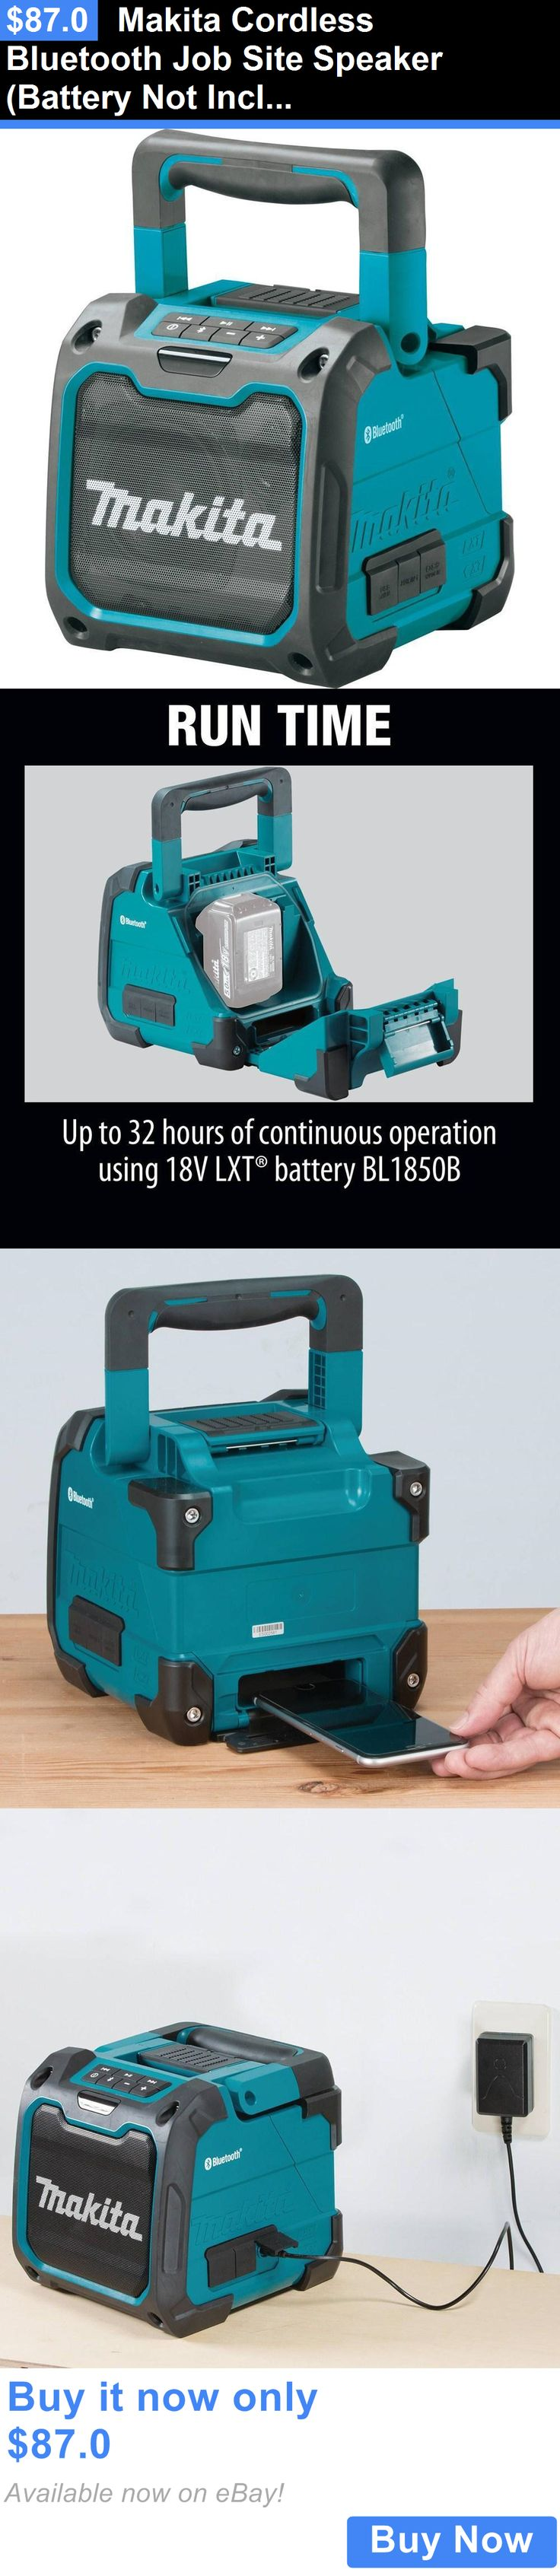 Portable AM FM Radios: Makita Cordless Bluetooth Job Site Speaker (Battery Not Included)   Xrm07 BUY IT NOW ONLY: $87.0